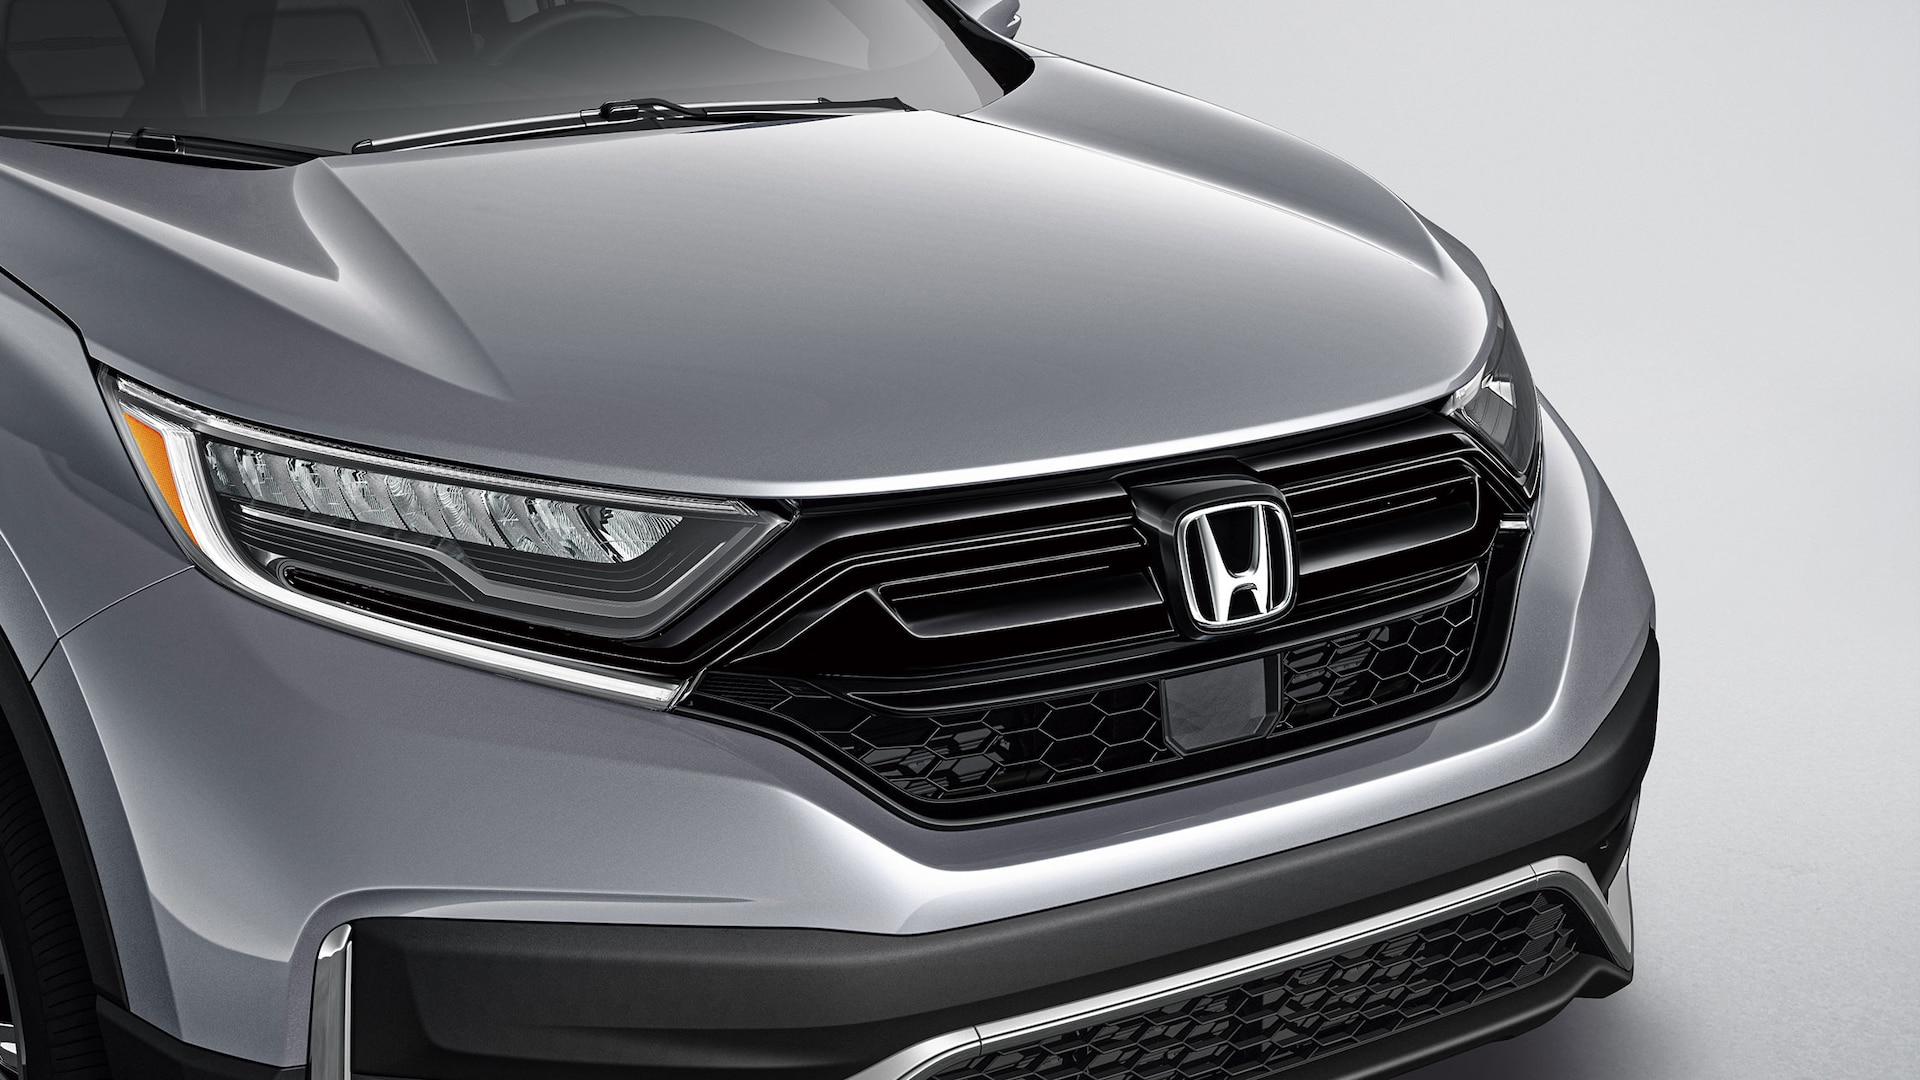 Detail of accessory gloss-black grille on the 2020 Honda CR-V.